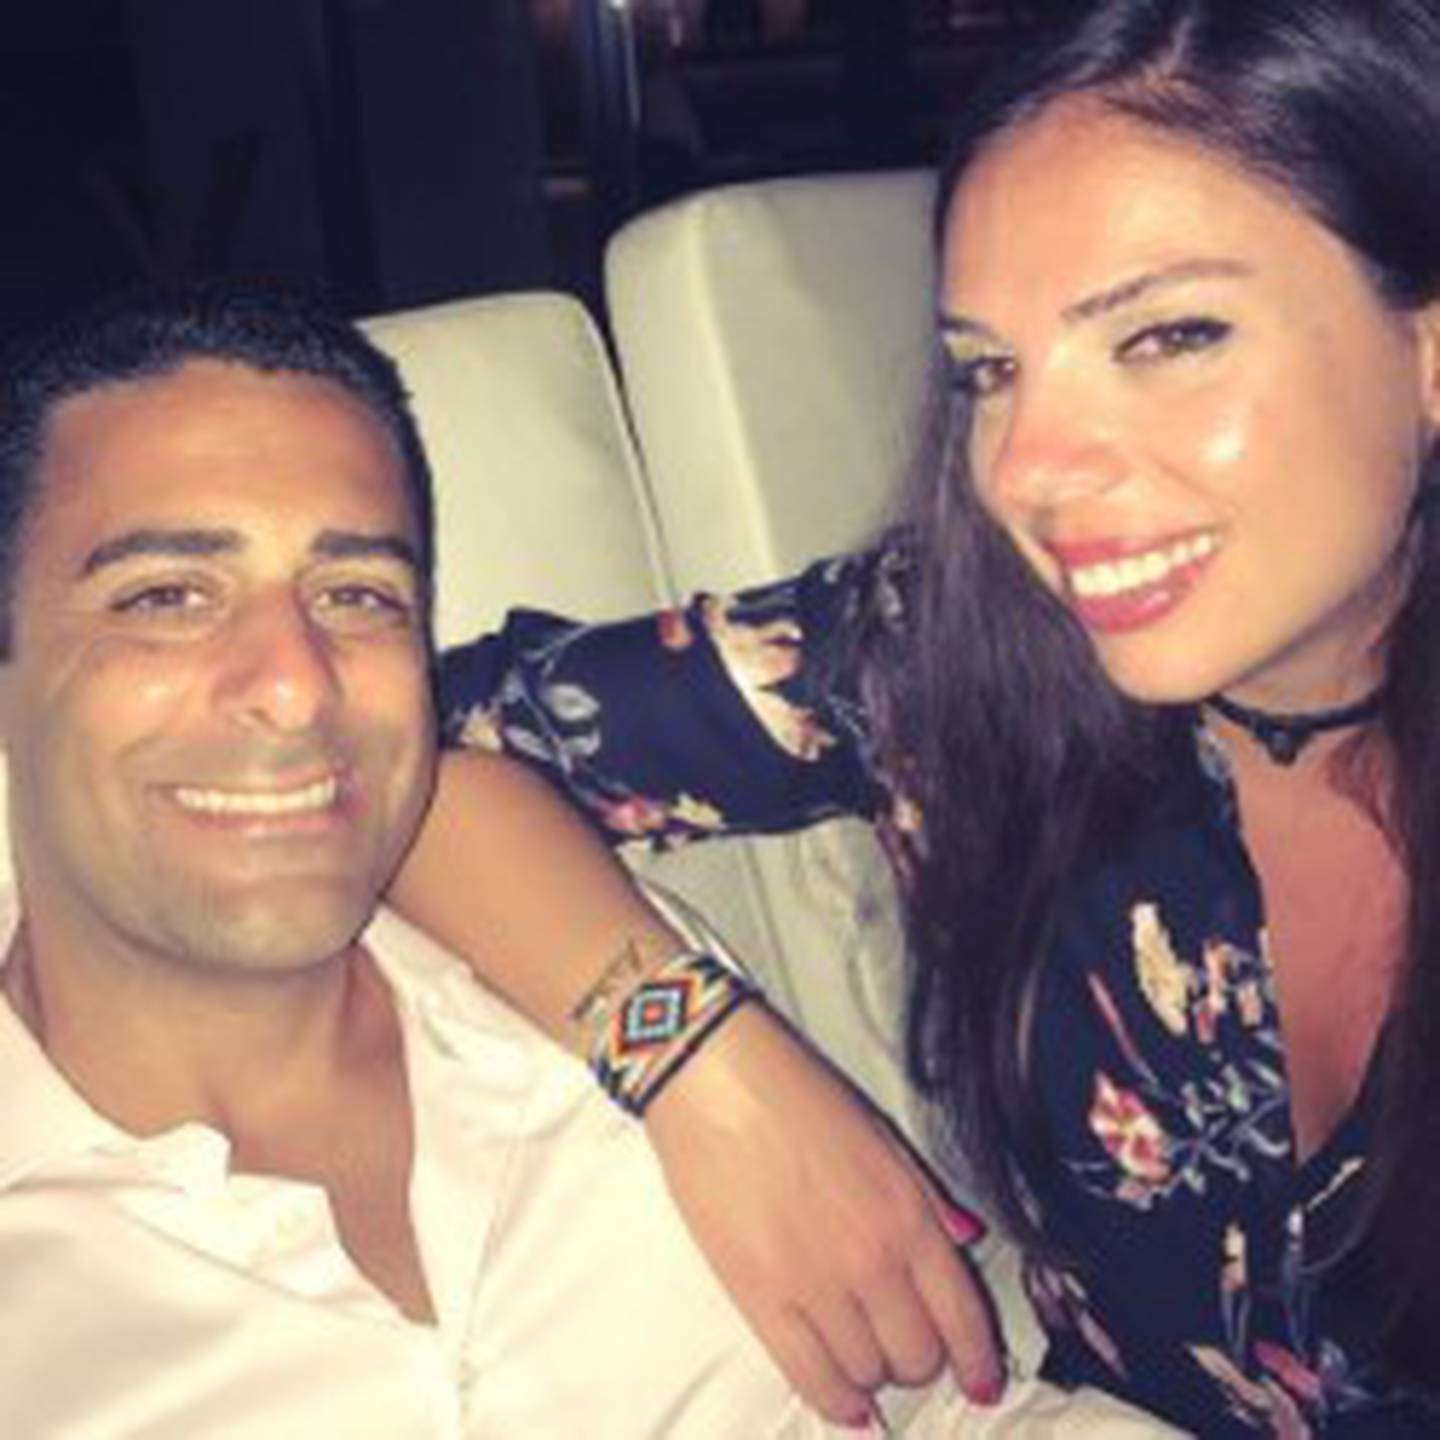 Anis Haddad has not seen his wife Micheline Nasr since February. Photo: Supplied